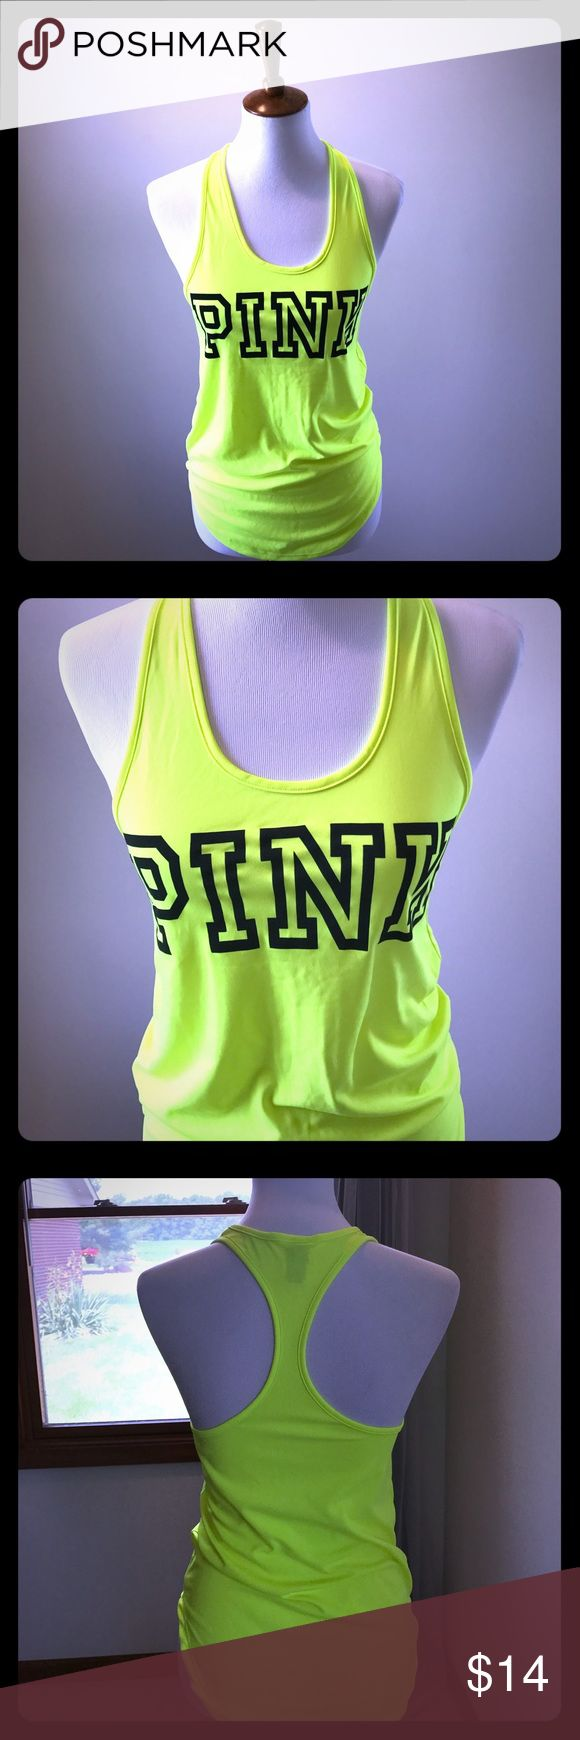 [VS PINK] Neon Yellow Razorback Tank Top [VS PINK] Neon Yellow Razorback Tank Top in Size XS - 100% polyester material - Worn once....Excellent Condition!! PINK Victoria's Secret Tops Tank Tops